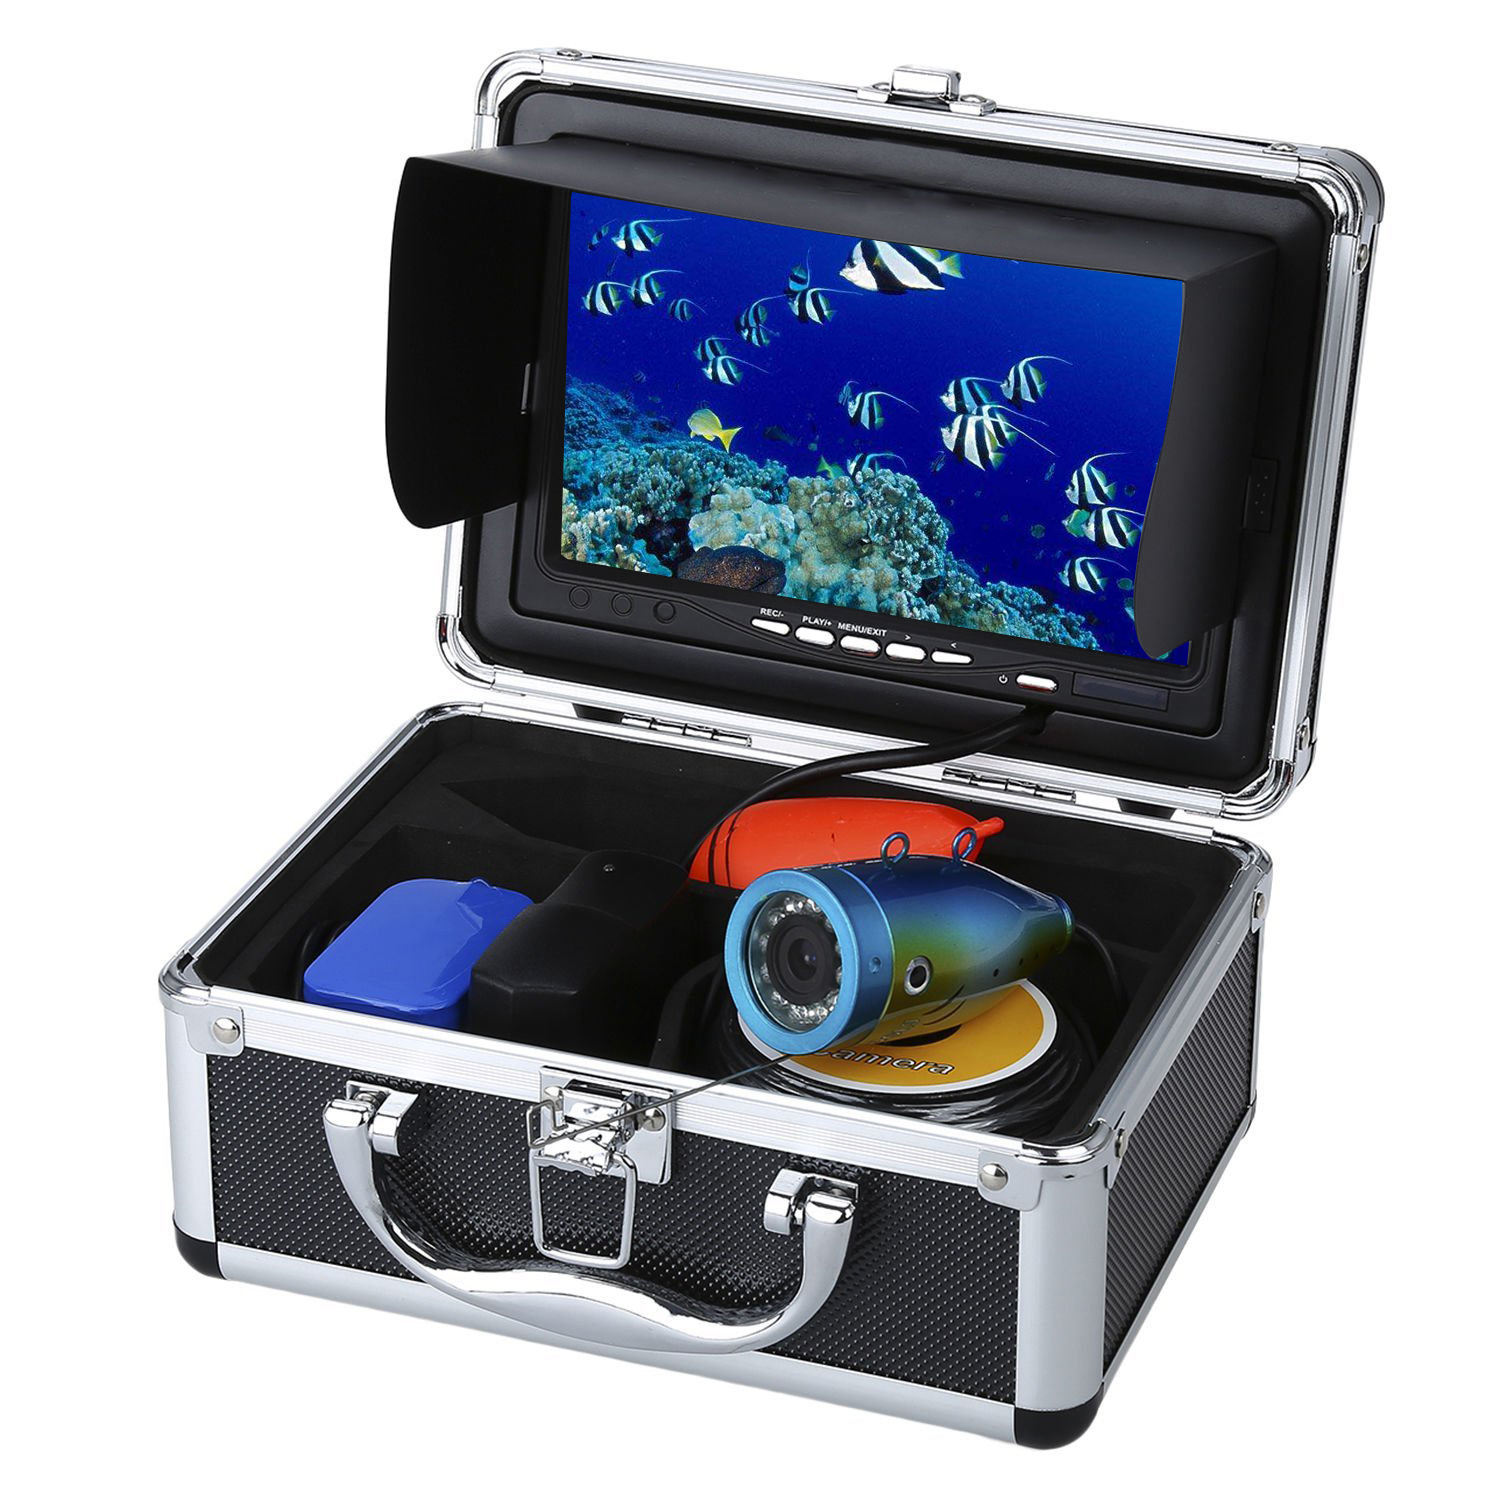 "1000TVL HD Waterproof Underwater 15M Fish Finder 7"" Monitor Underwater Fishing Camera 12Pcs White LED Lights With DVR Function"